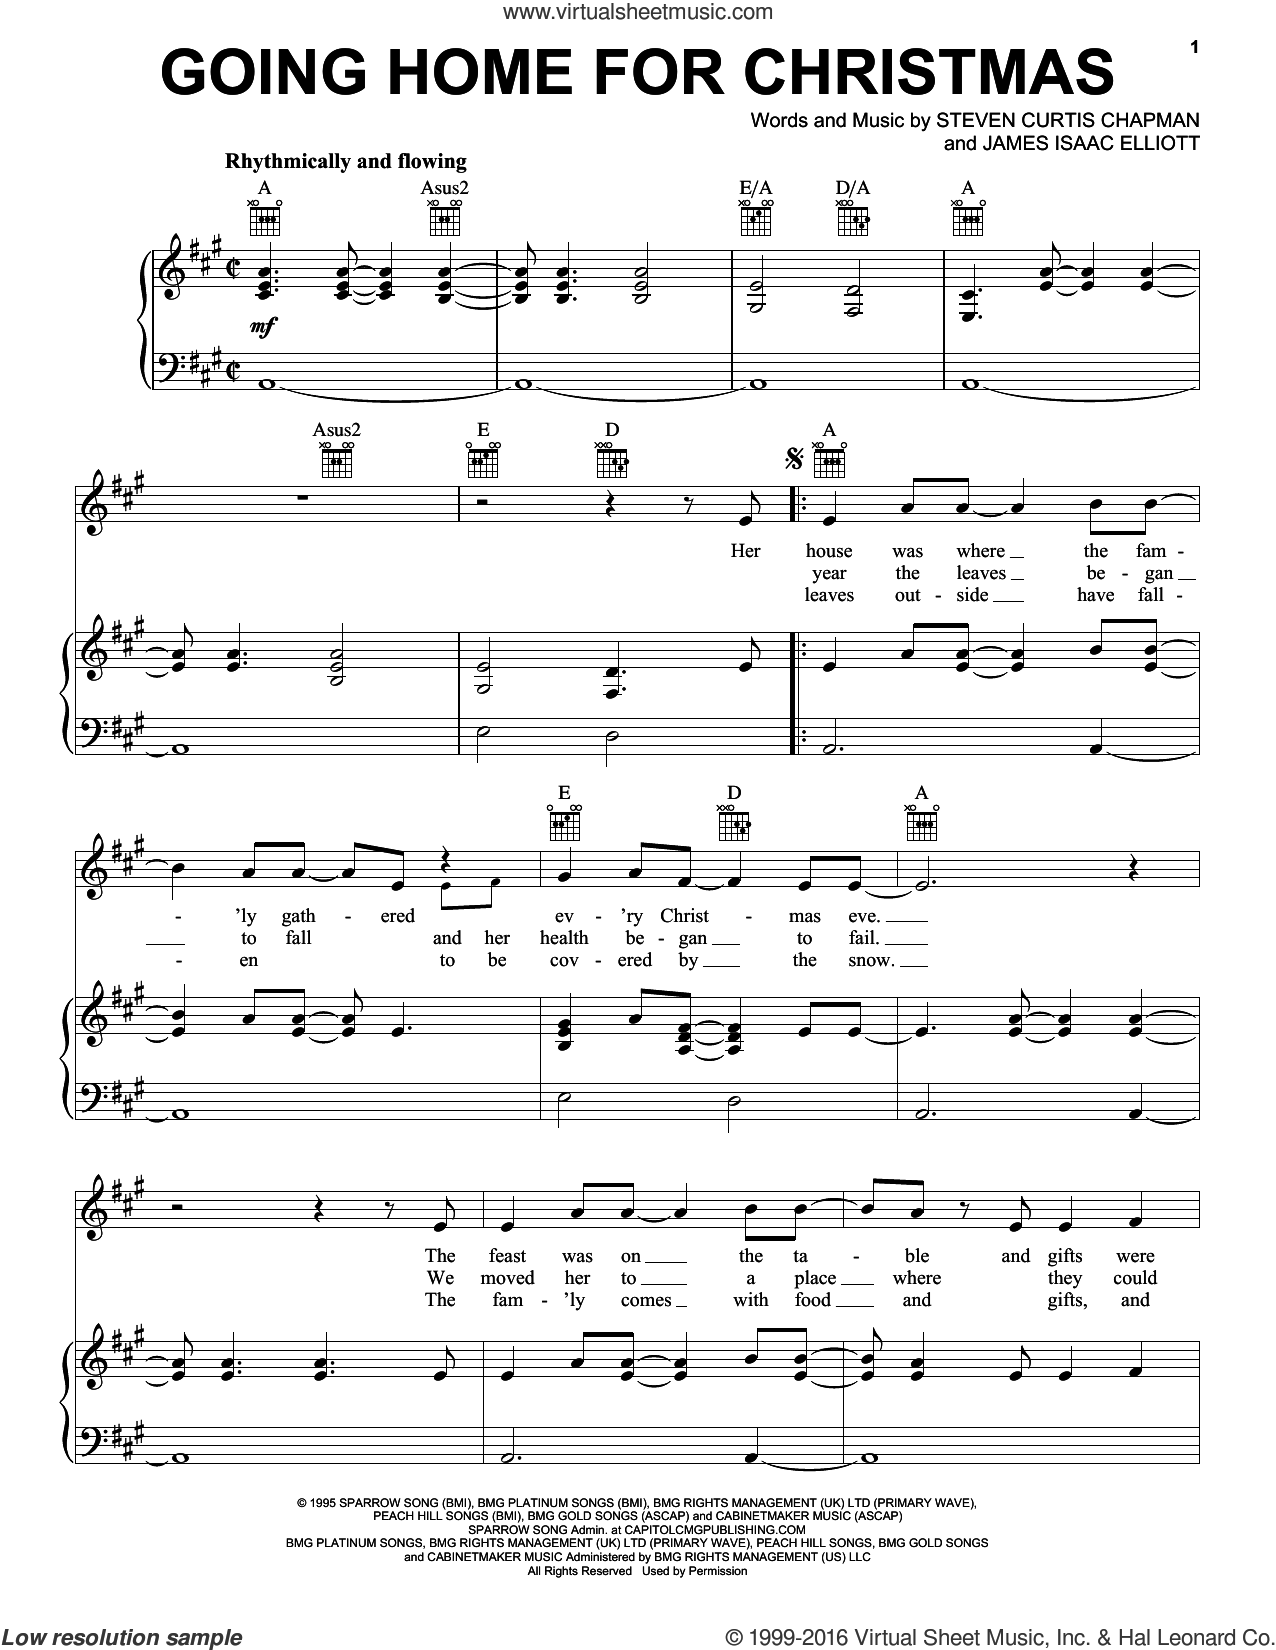 Going Home For Christmas sheet music for voice, piano or guitar by James Isaac Elliott